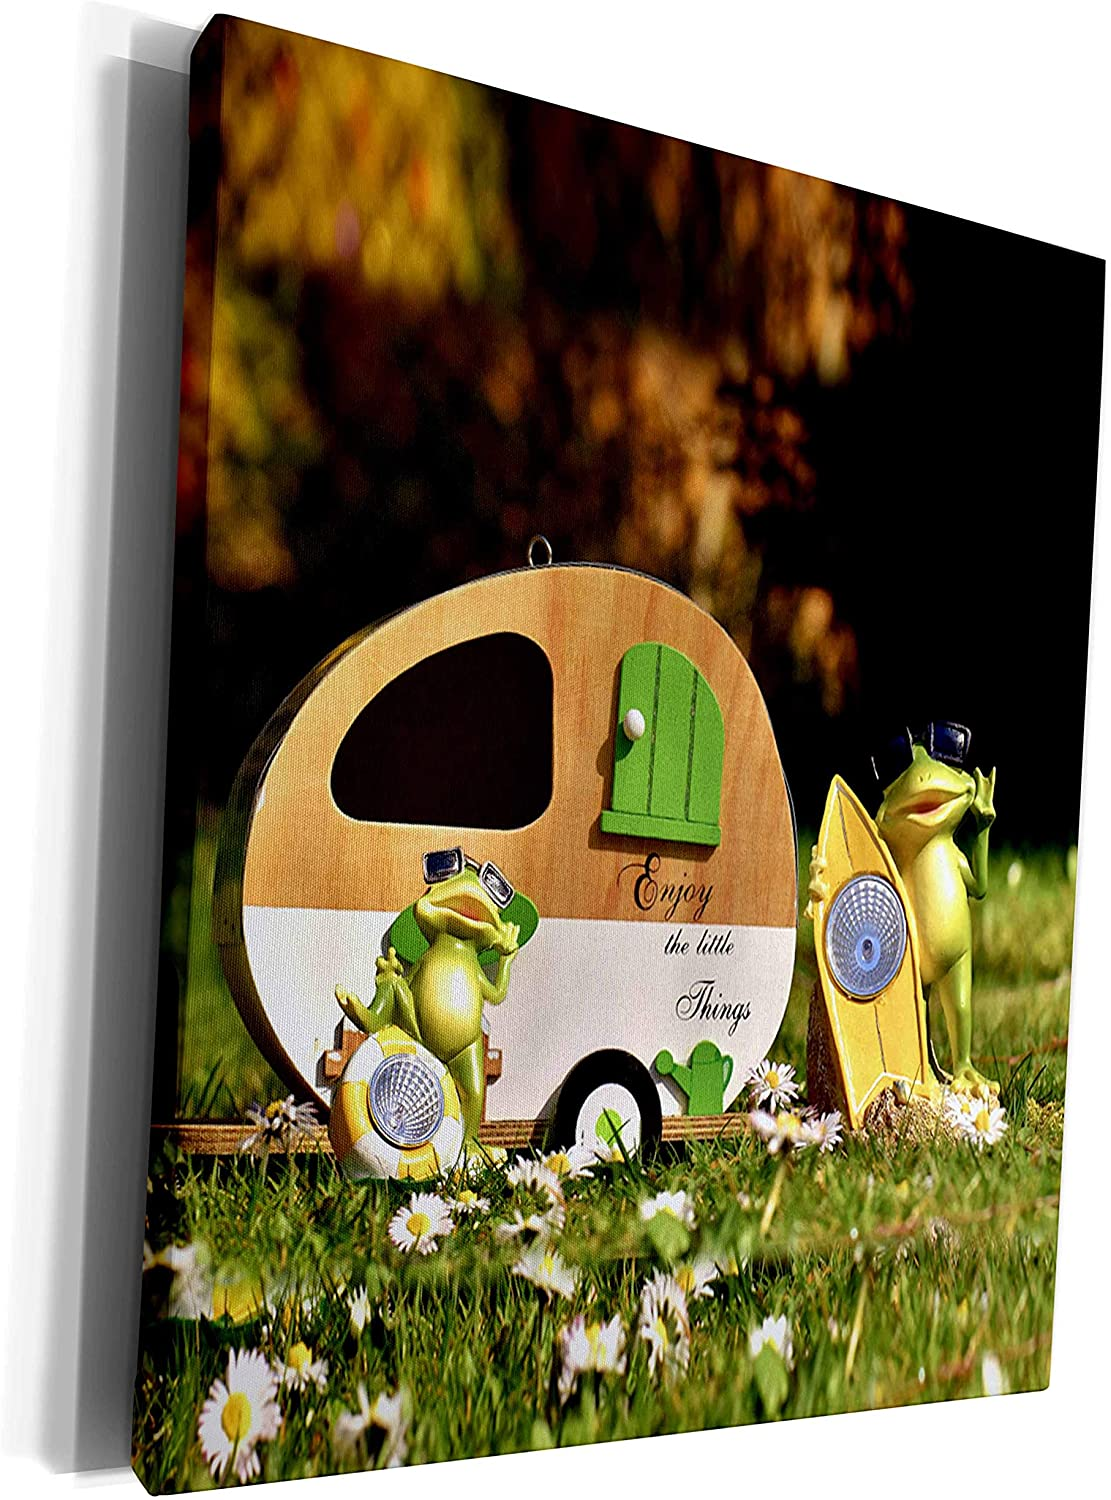 3dRose 2 Travel – Camping, Hiking, Biking Activities - Enjoy the Little Things Funny Frog Couple by Camper - Museum Grade Canvas Wrap (cw_311409_1)